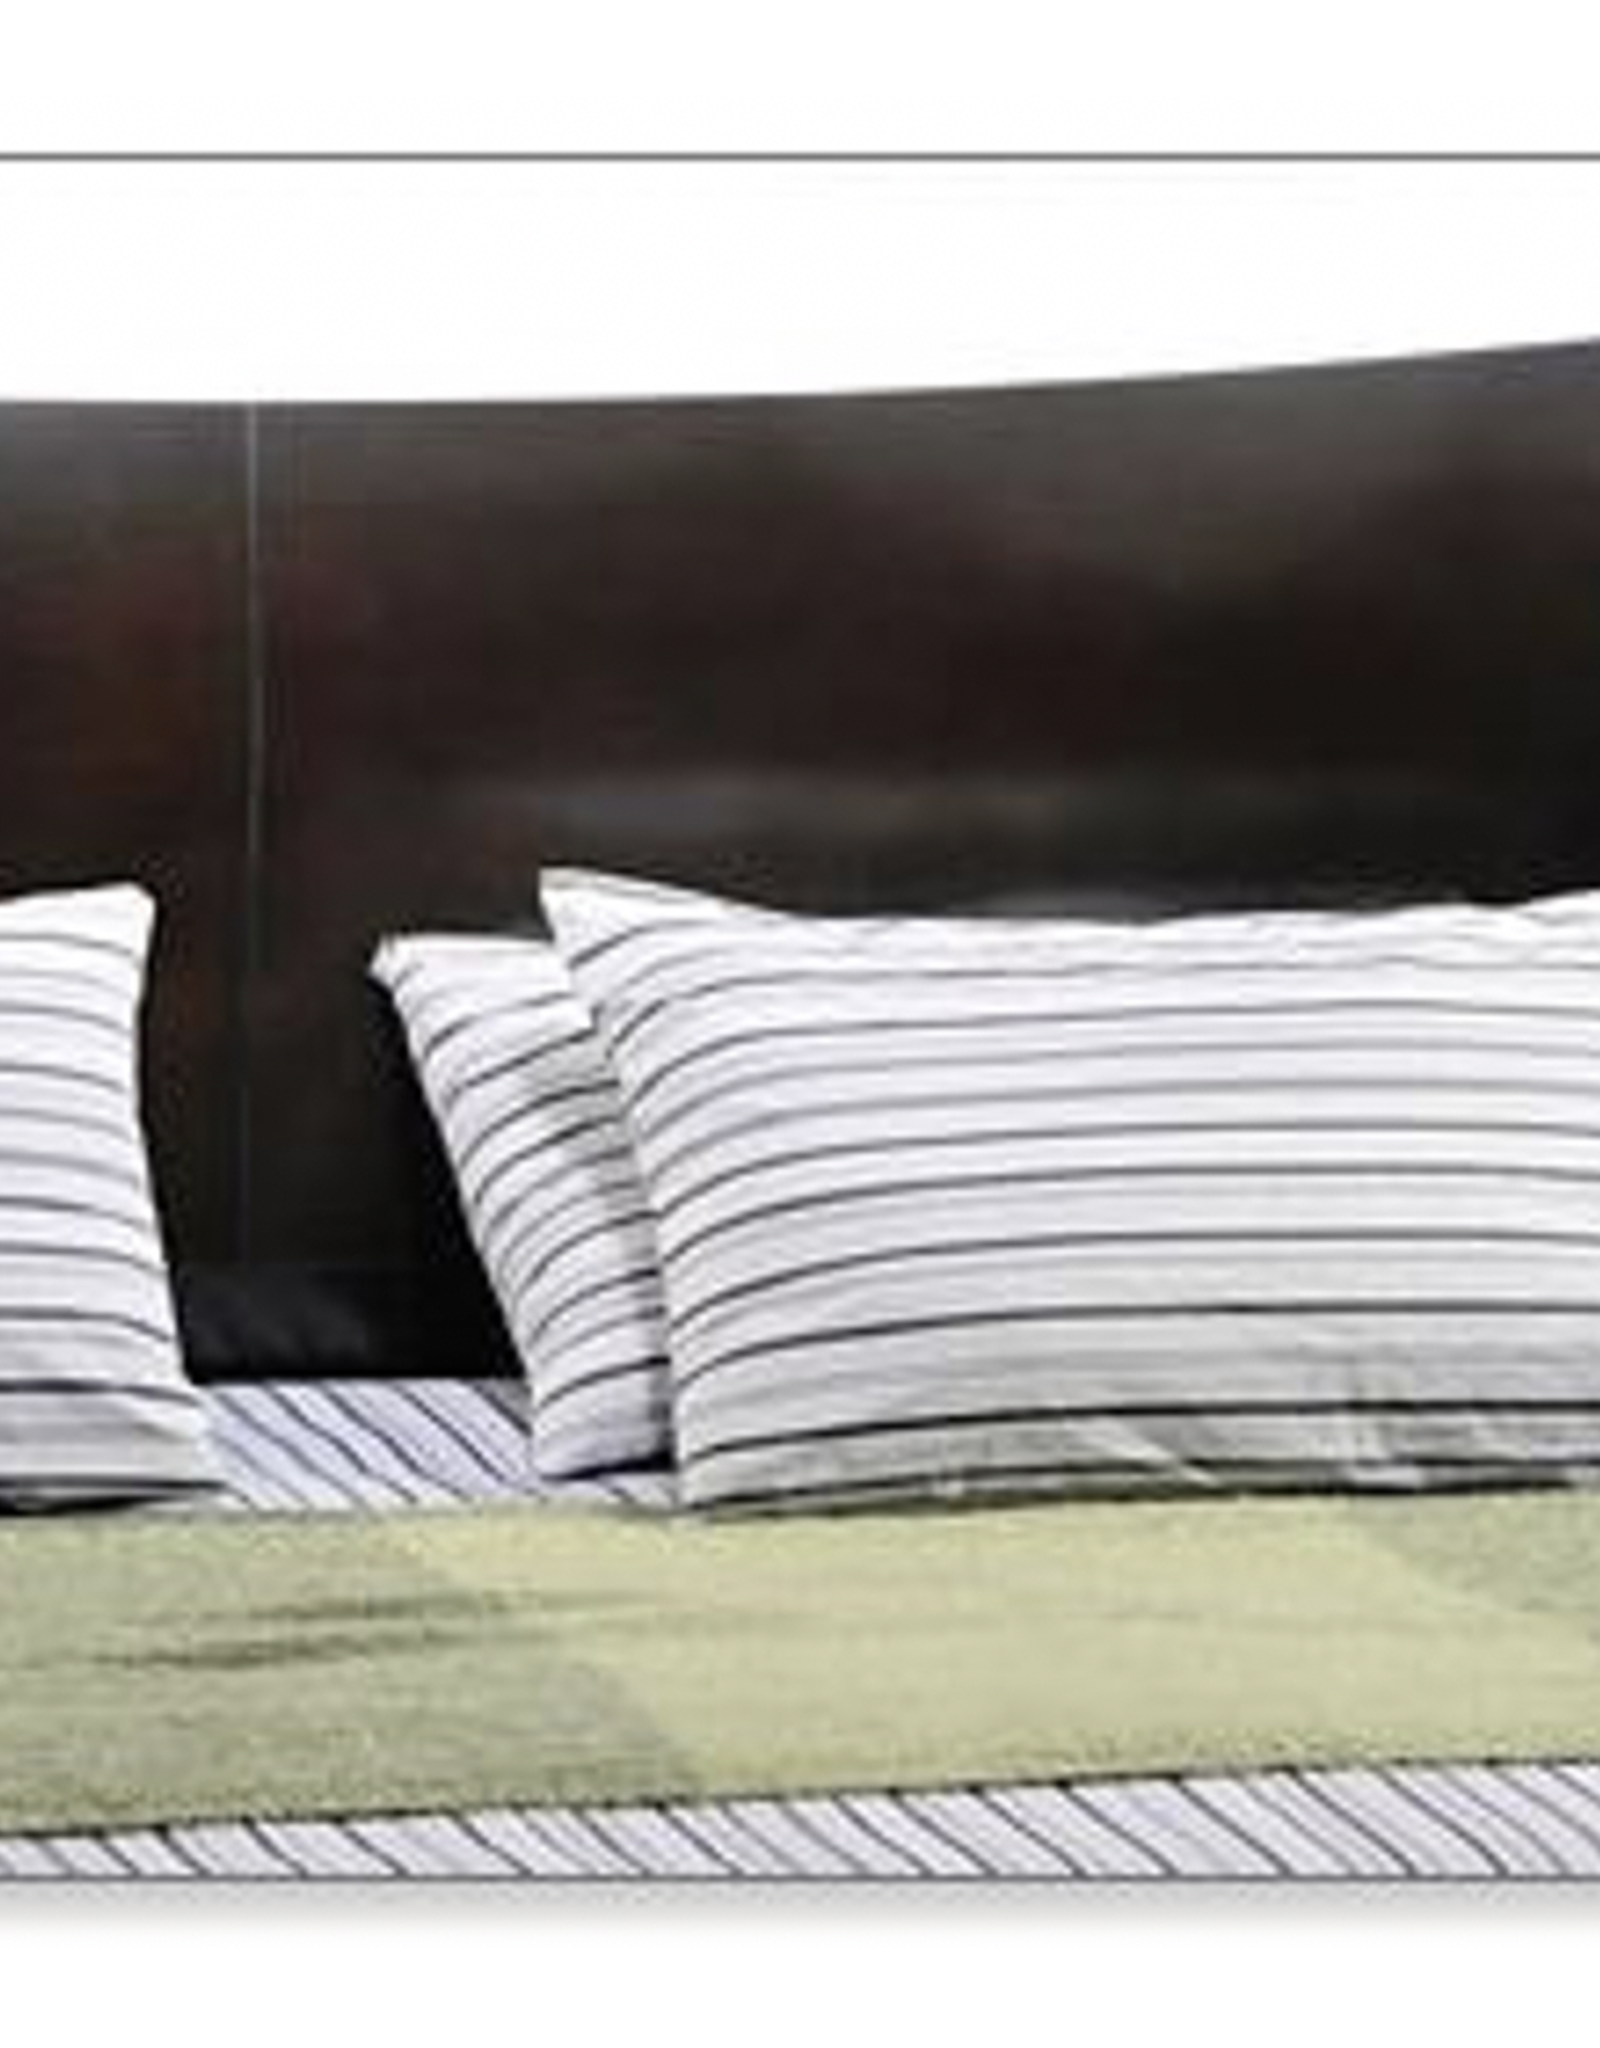 Blackpepper Headboard - Comes in Three Colors